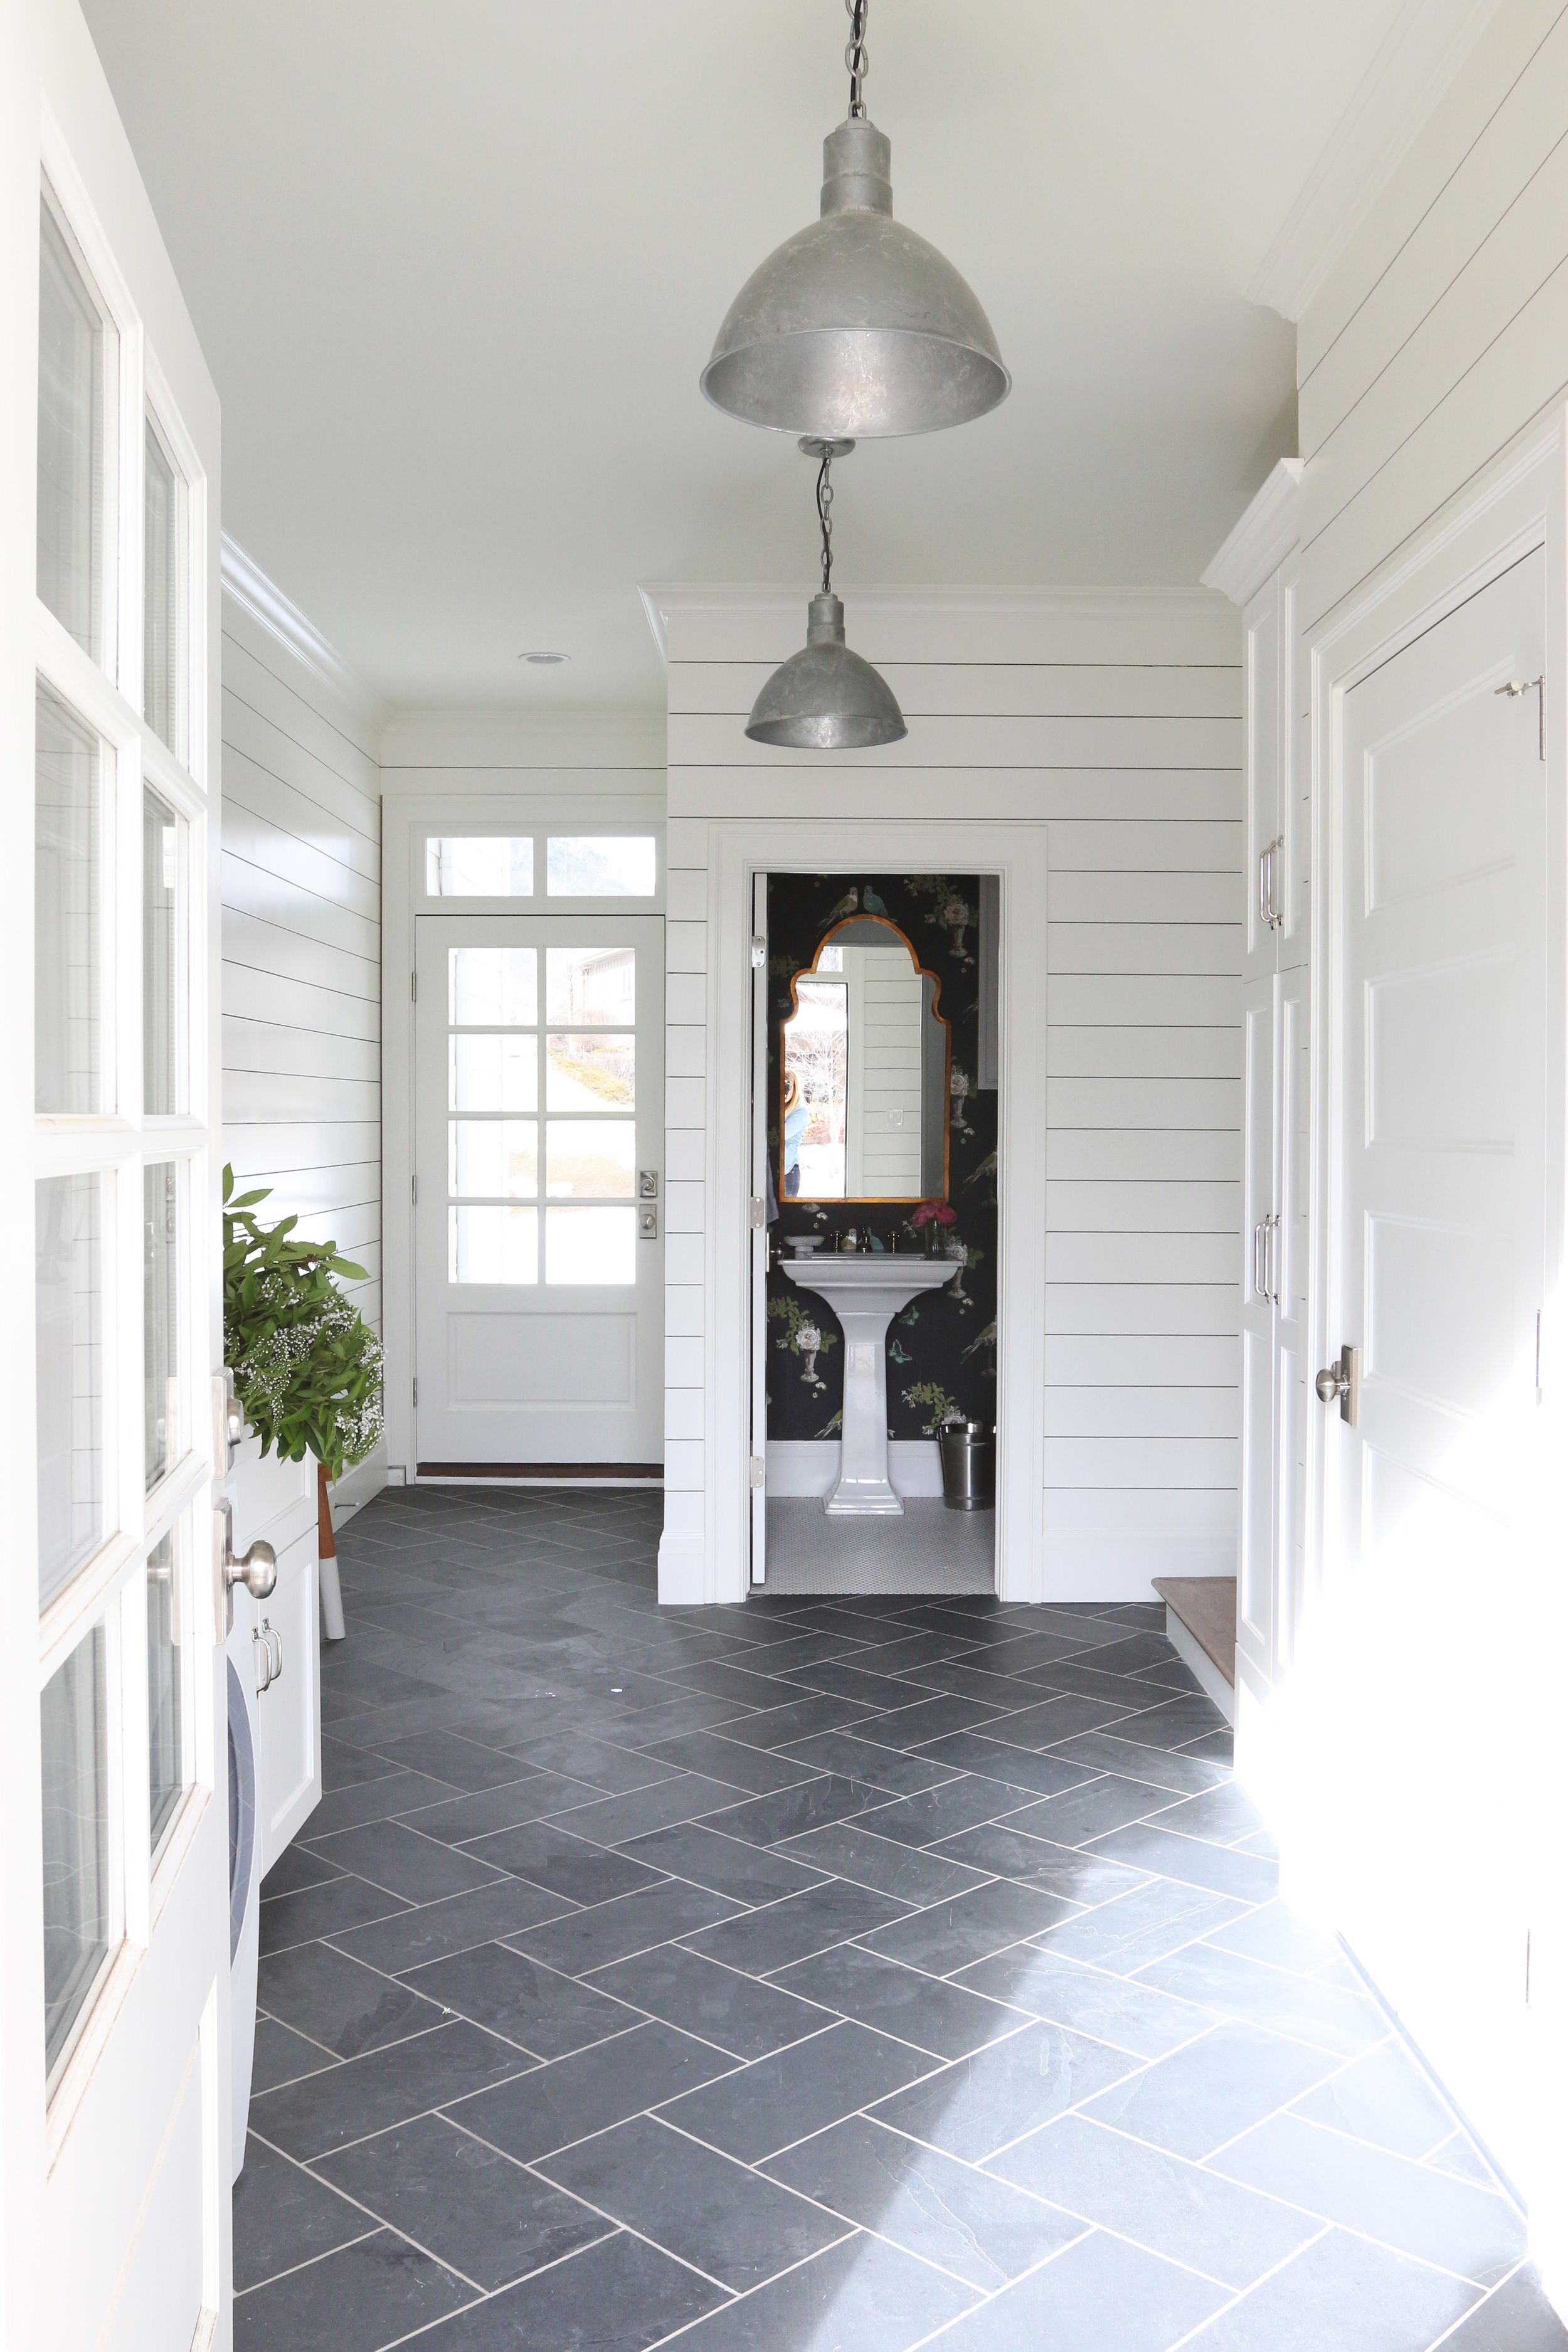 The midway house mudroom penny tile slate flooring and grout slate floors with pale grout penny tile in the bathroom white everywhere dailygadgetfo Choice Image